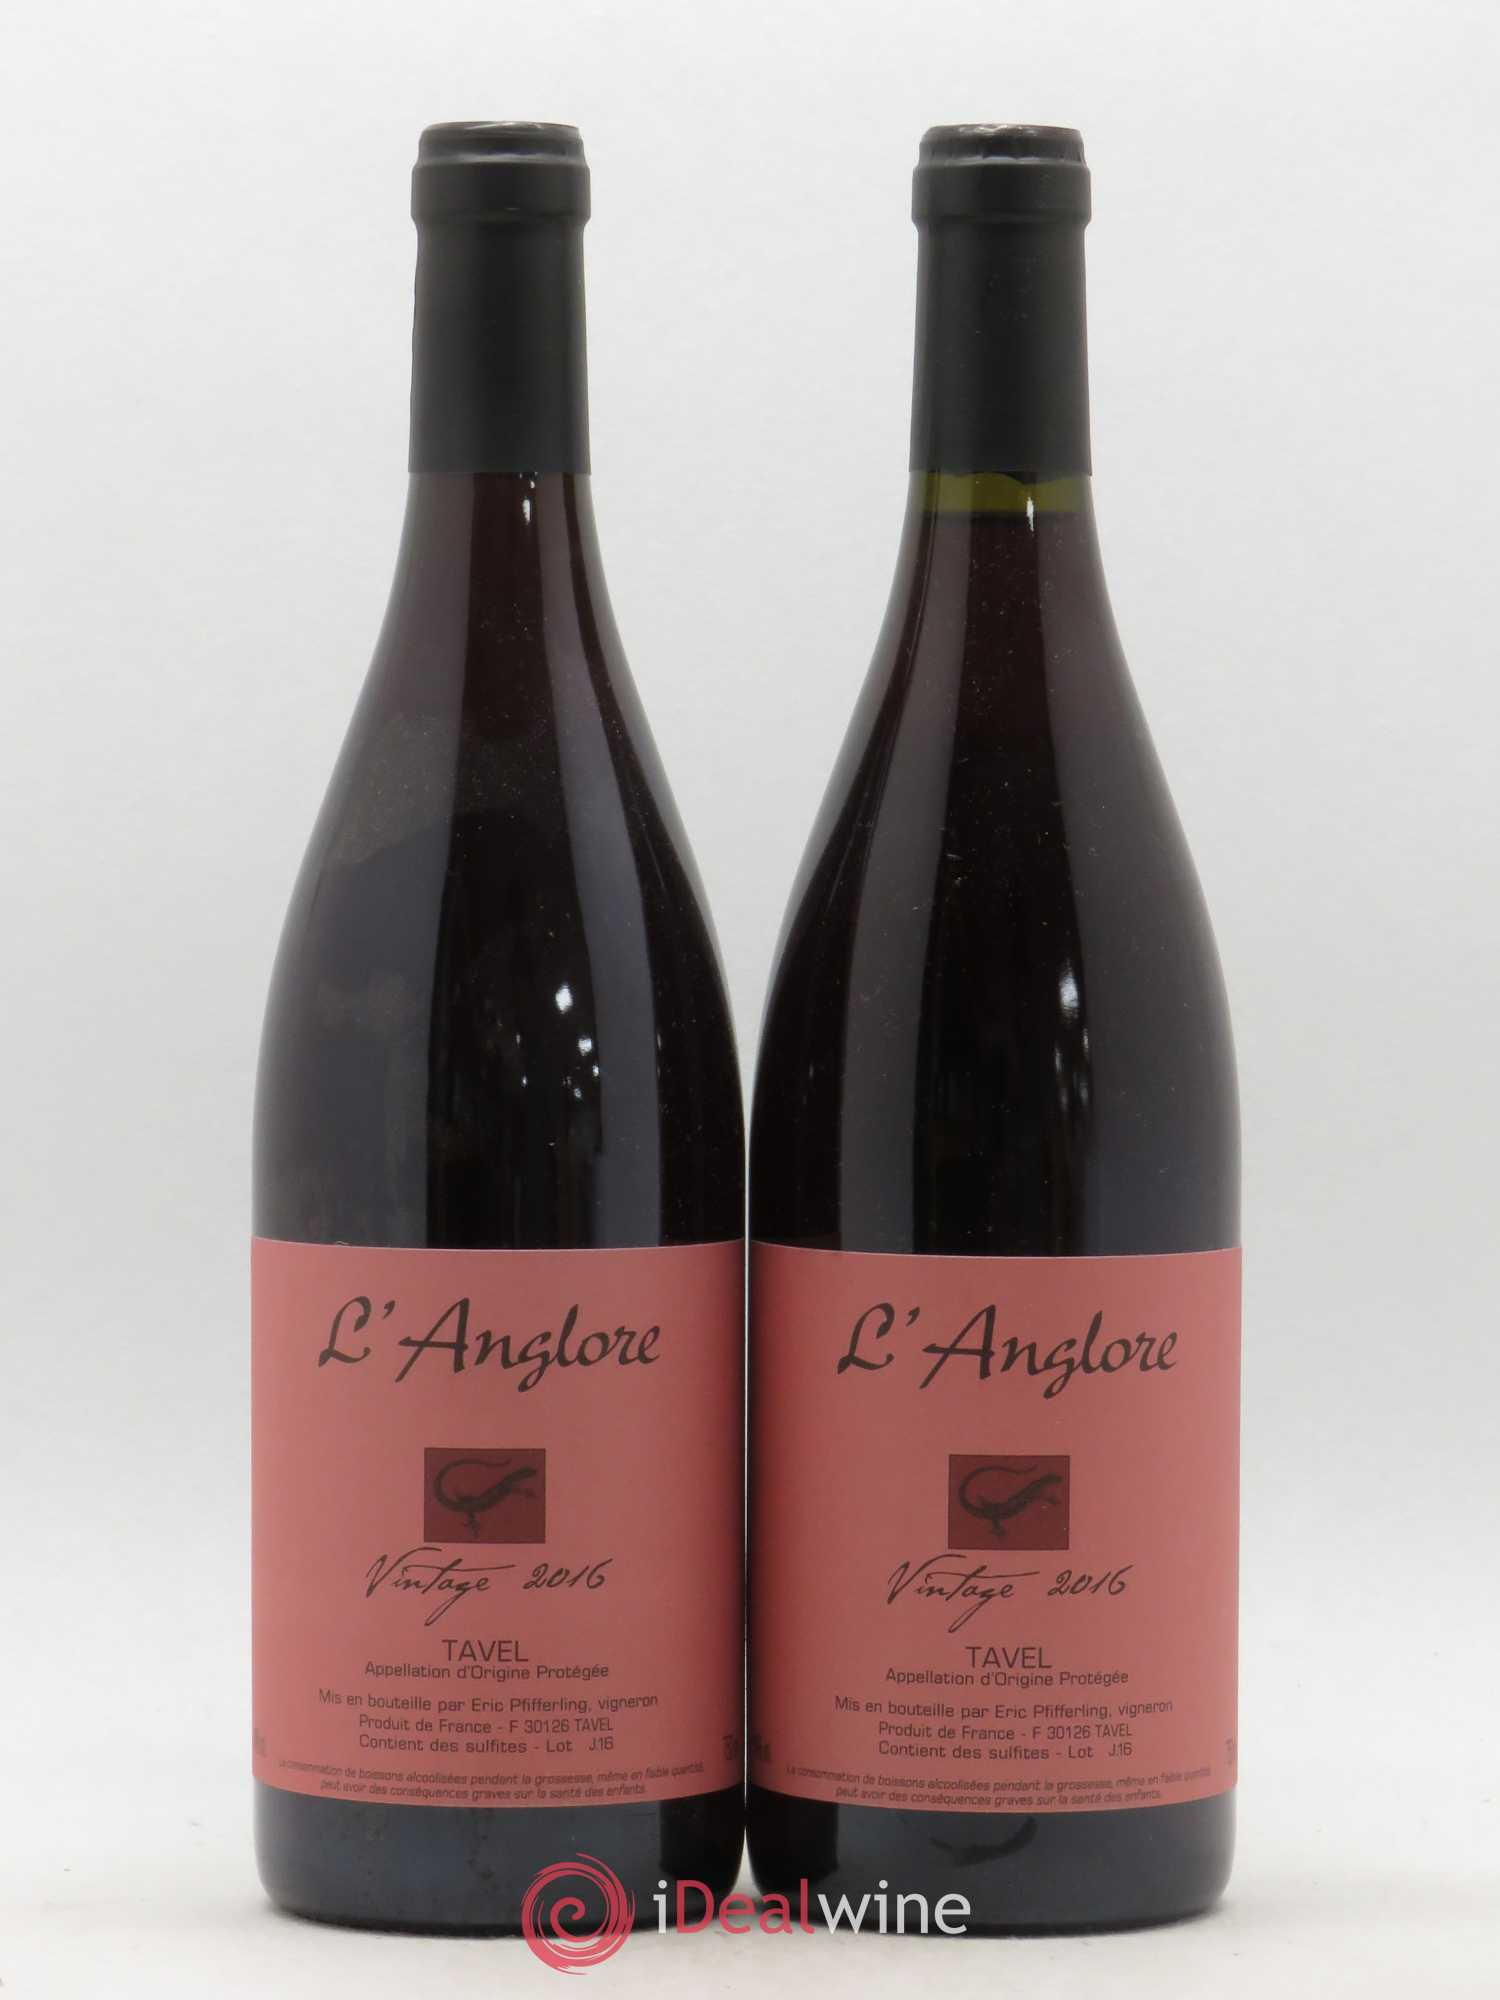 Tavel Vintage L'Anglore  2016 - Lot of 2 Bottles